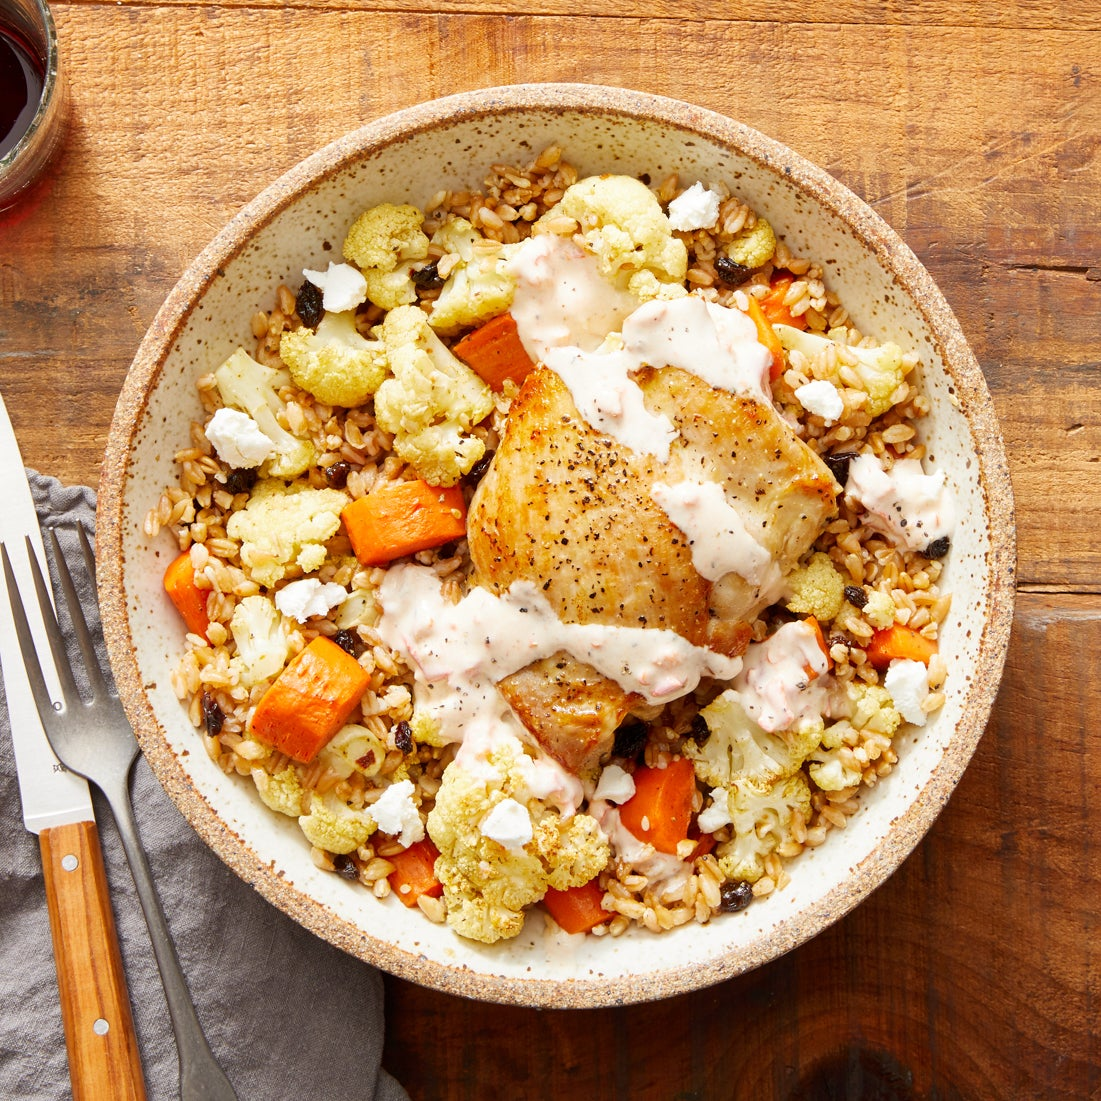 Seared Chicken Thighs & Creamy Pepper Sauce with Za'atar-Spiced Vegetables & Farro